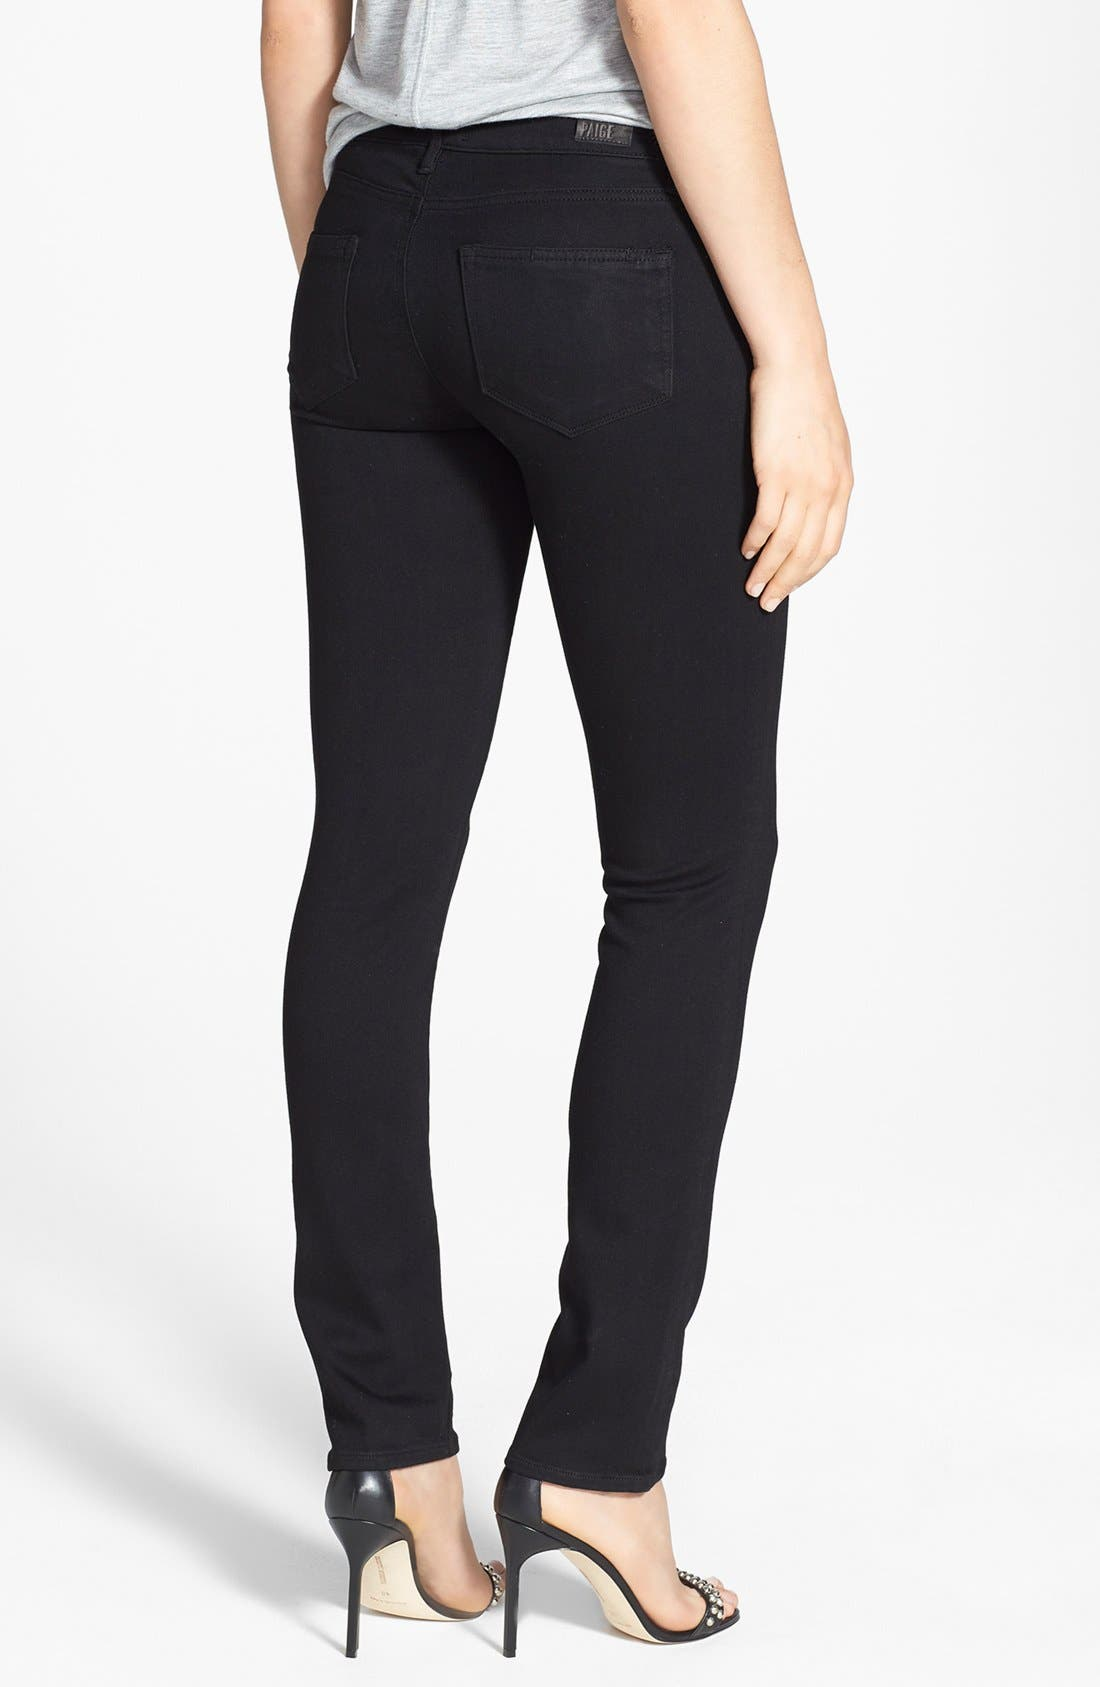 PAIGE, Transcend - Skyline Skinny Jeans, Alternate thumbnail 13, color, BLACK SHADOW